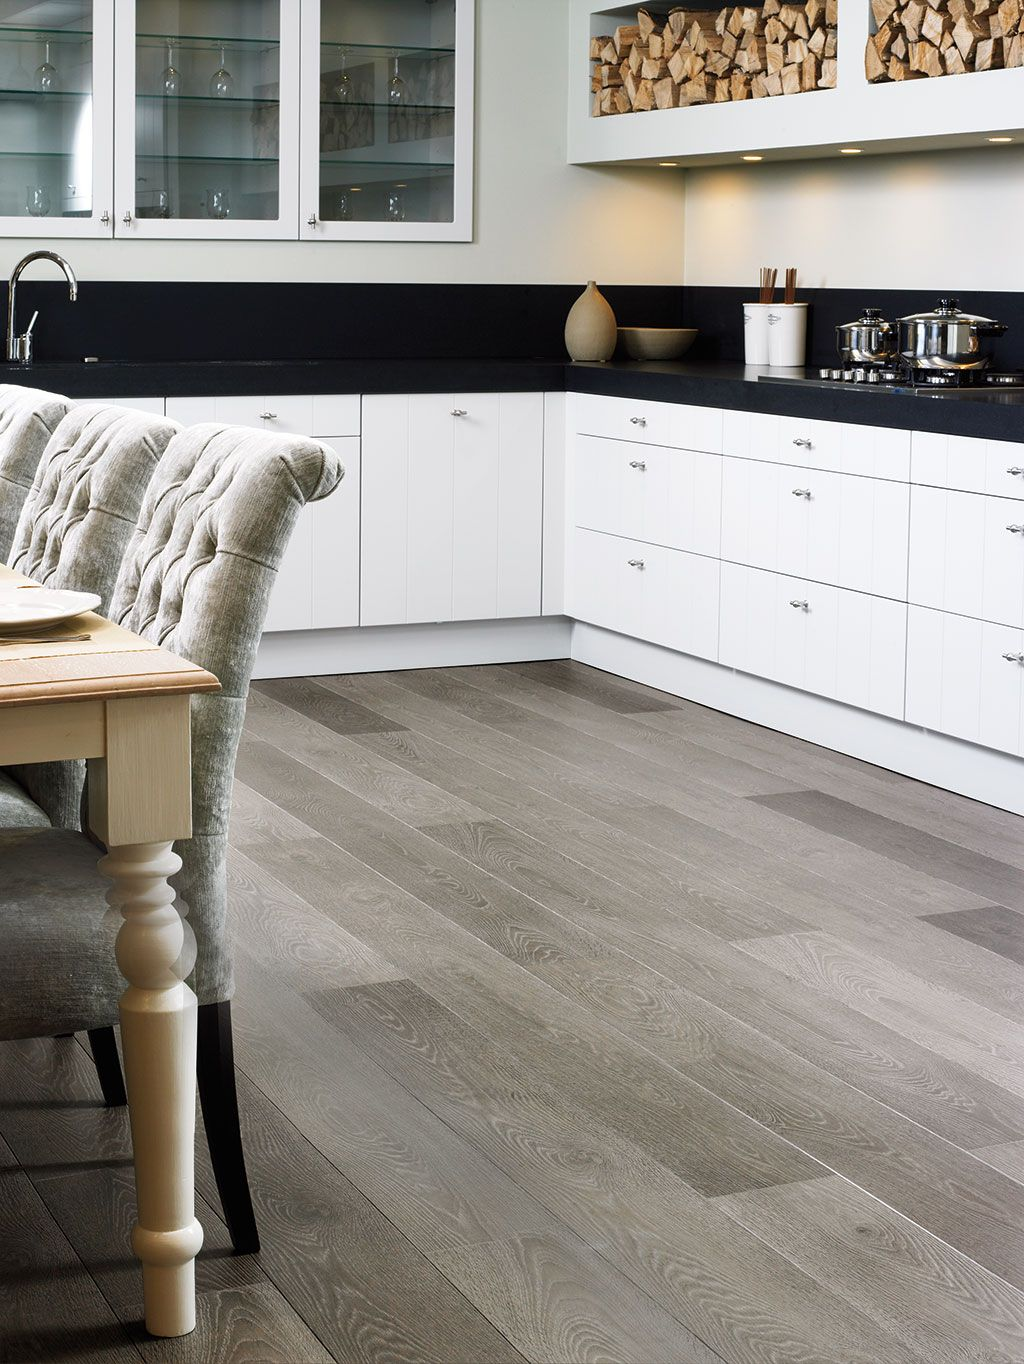 quick step laminate flooring largo 39 grey vintage oak planks 39 lpu1286 in a classic kitchen. Black Bedroom Furniture Sets. Home Design Ideas